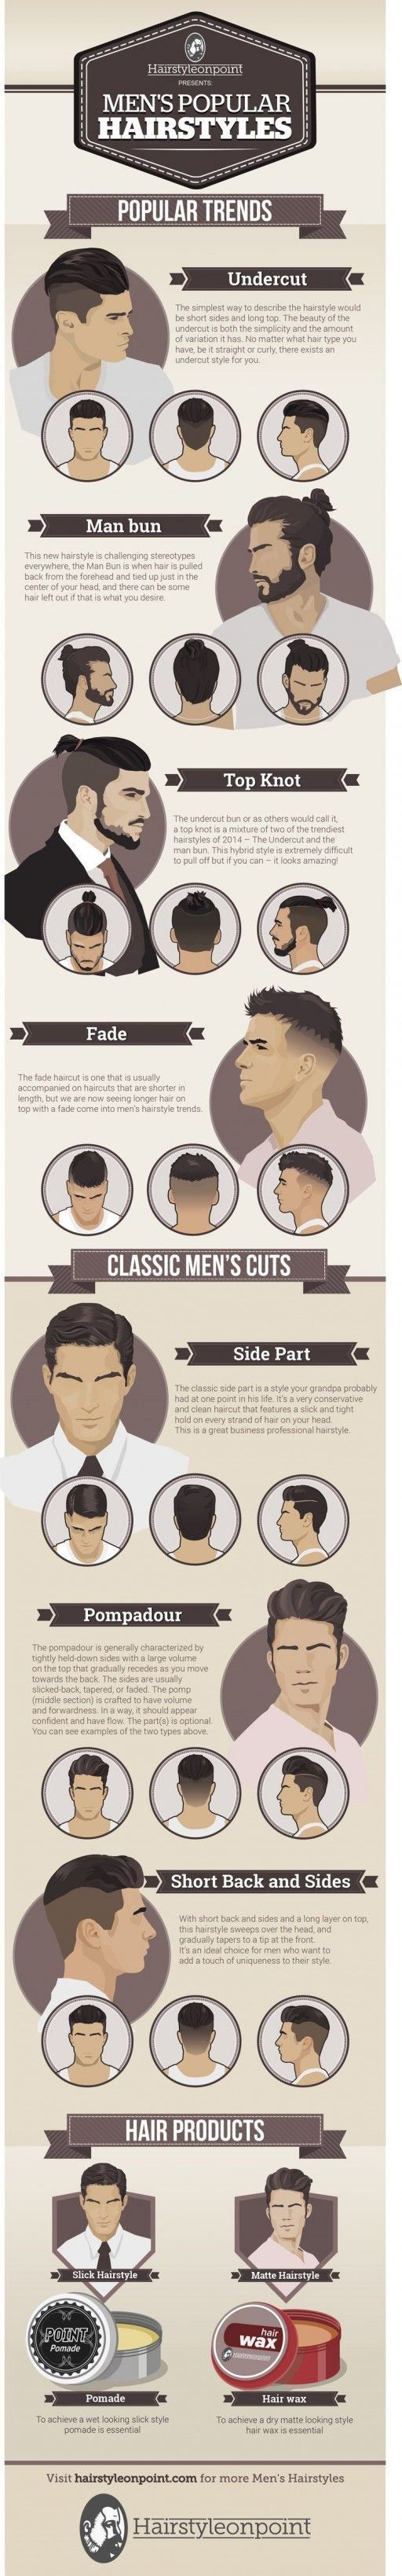 Top Men's Hairstyles | Joey Styles You